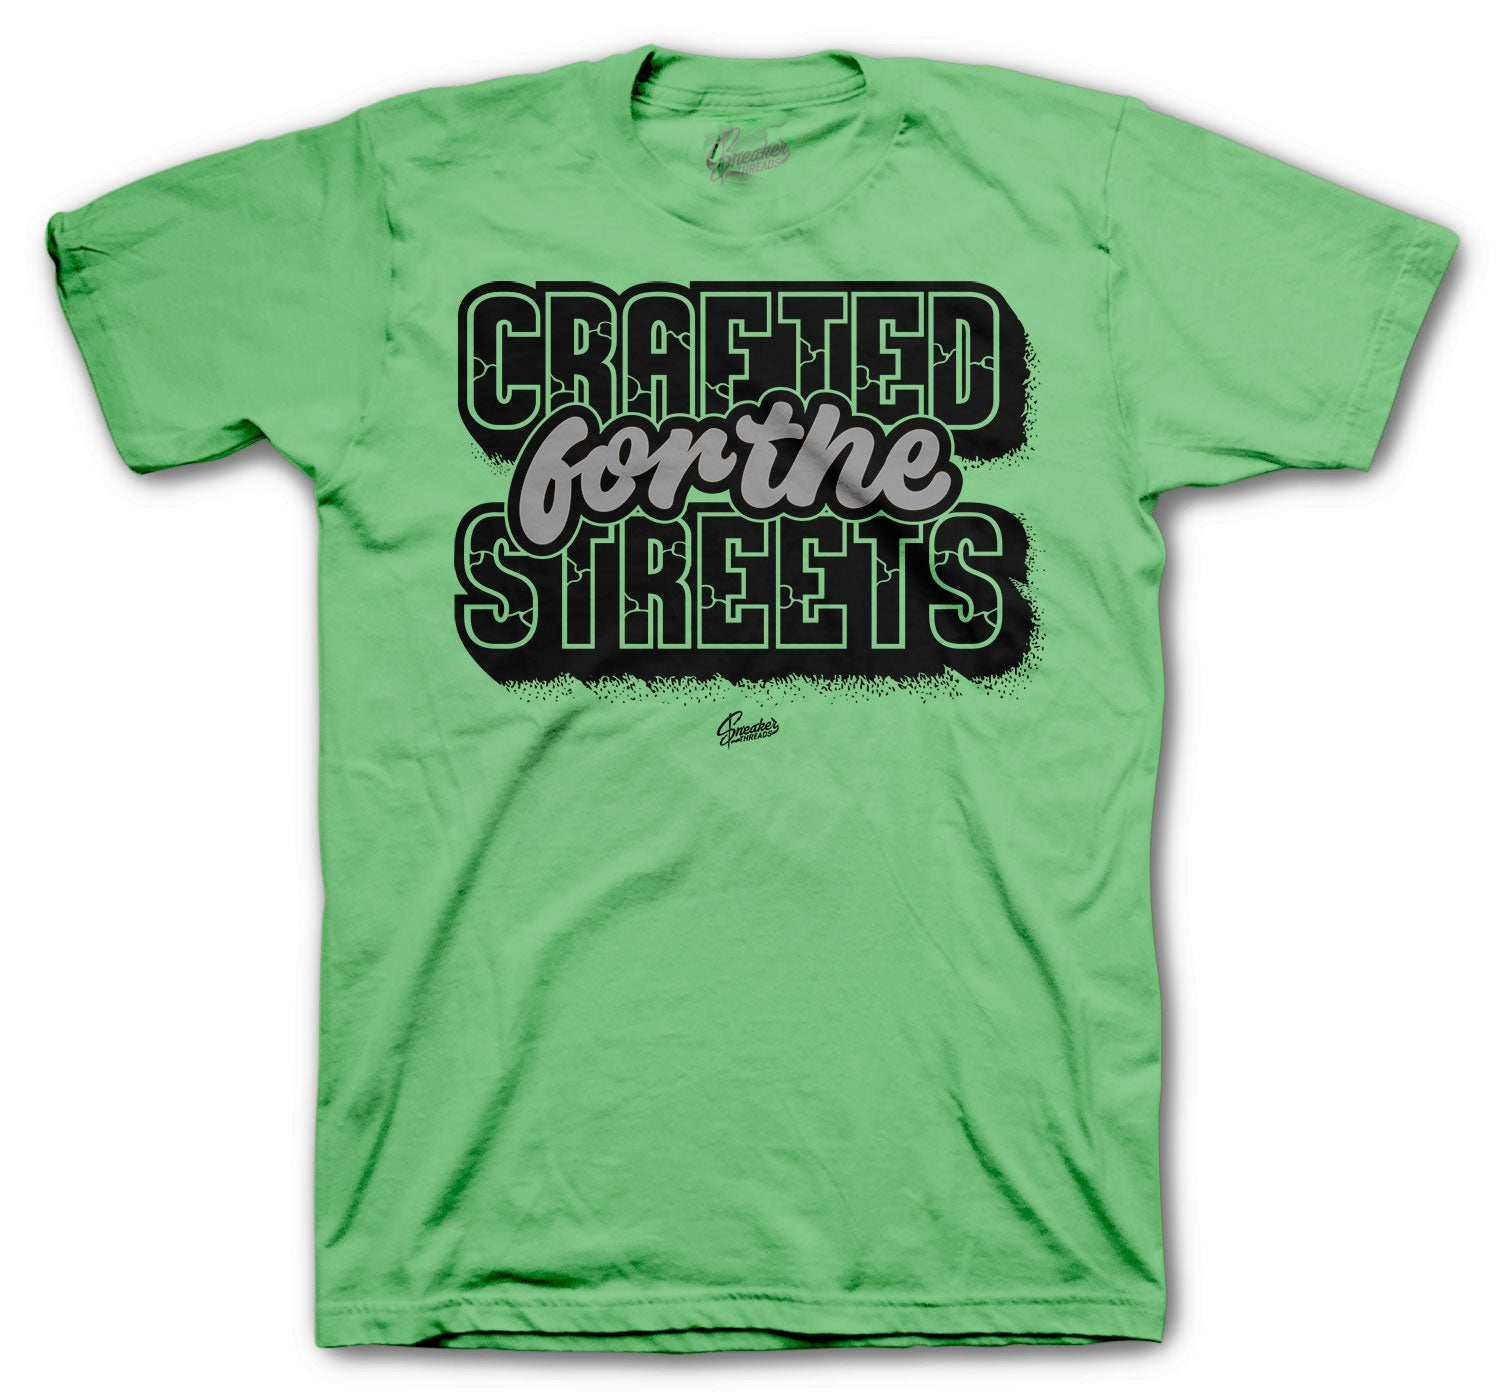 Zen Green Jordan 1 matching t shirts for men